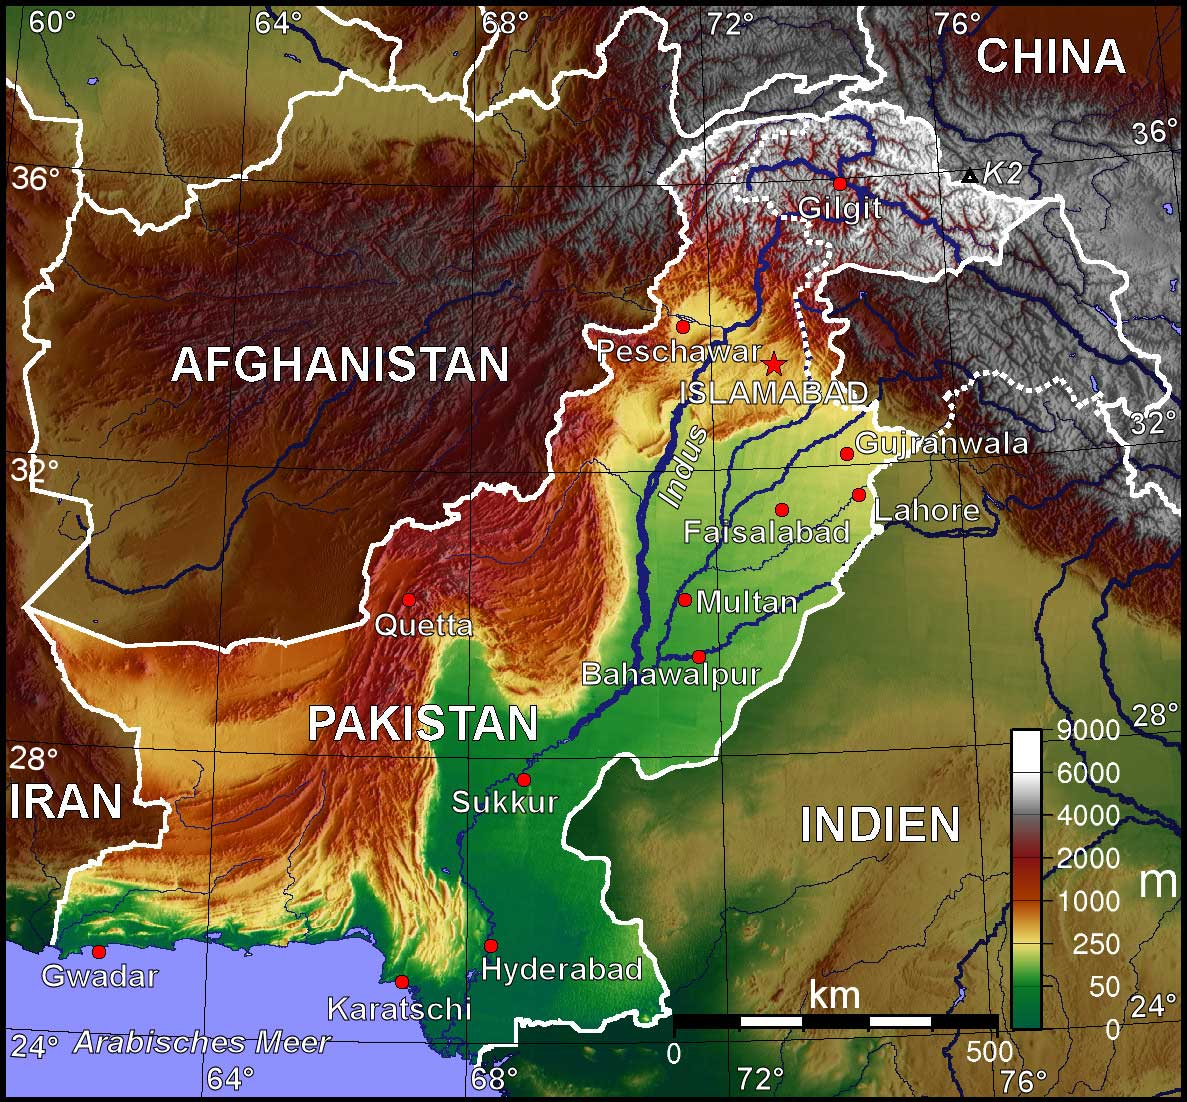 Pakistan Map - Silk Road - Study Abroad Journal - Steven Martin - Indus River Valley Civilization